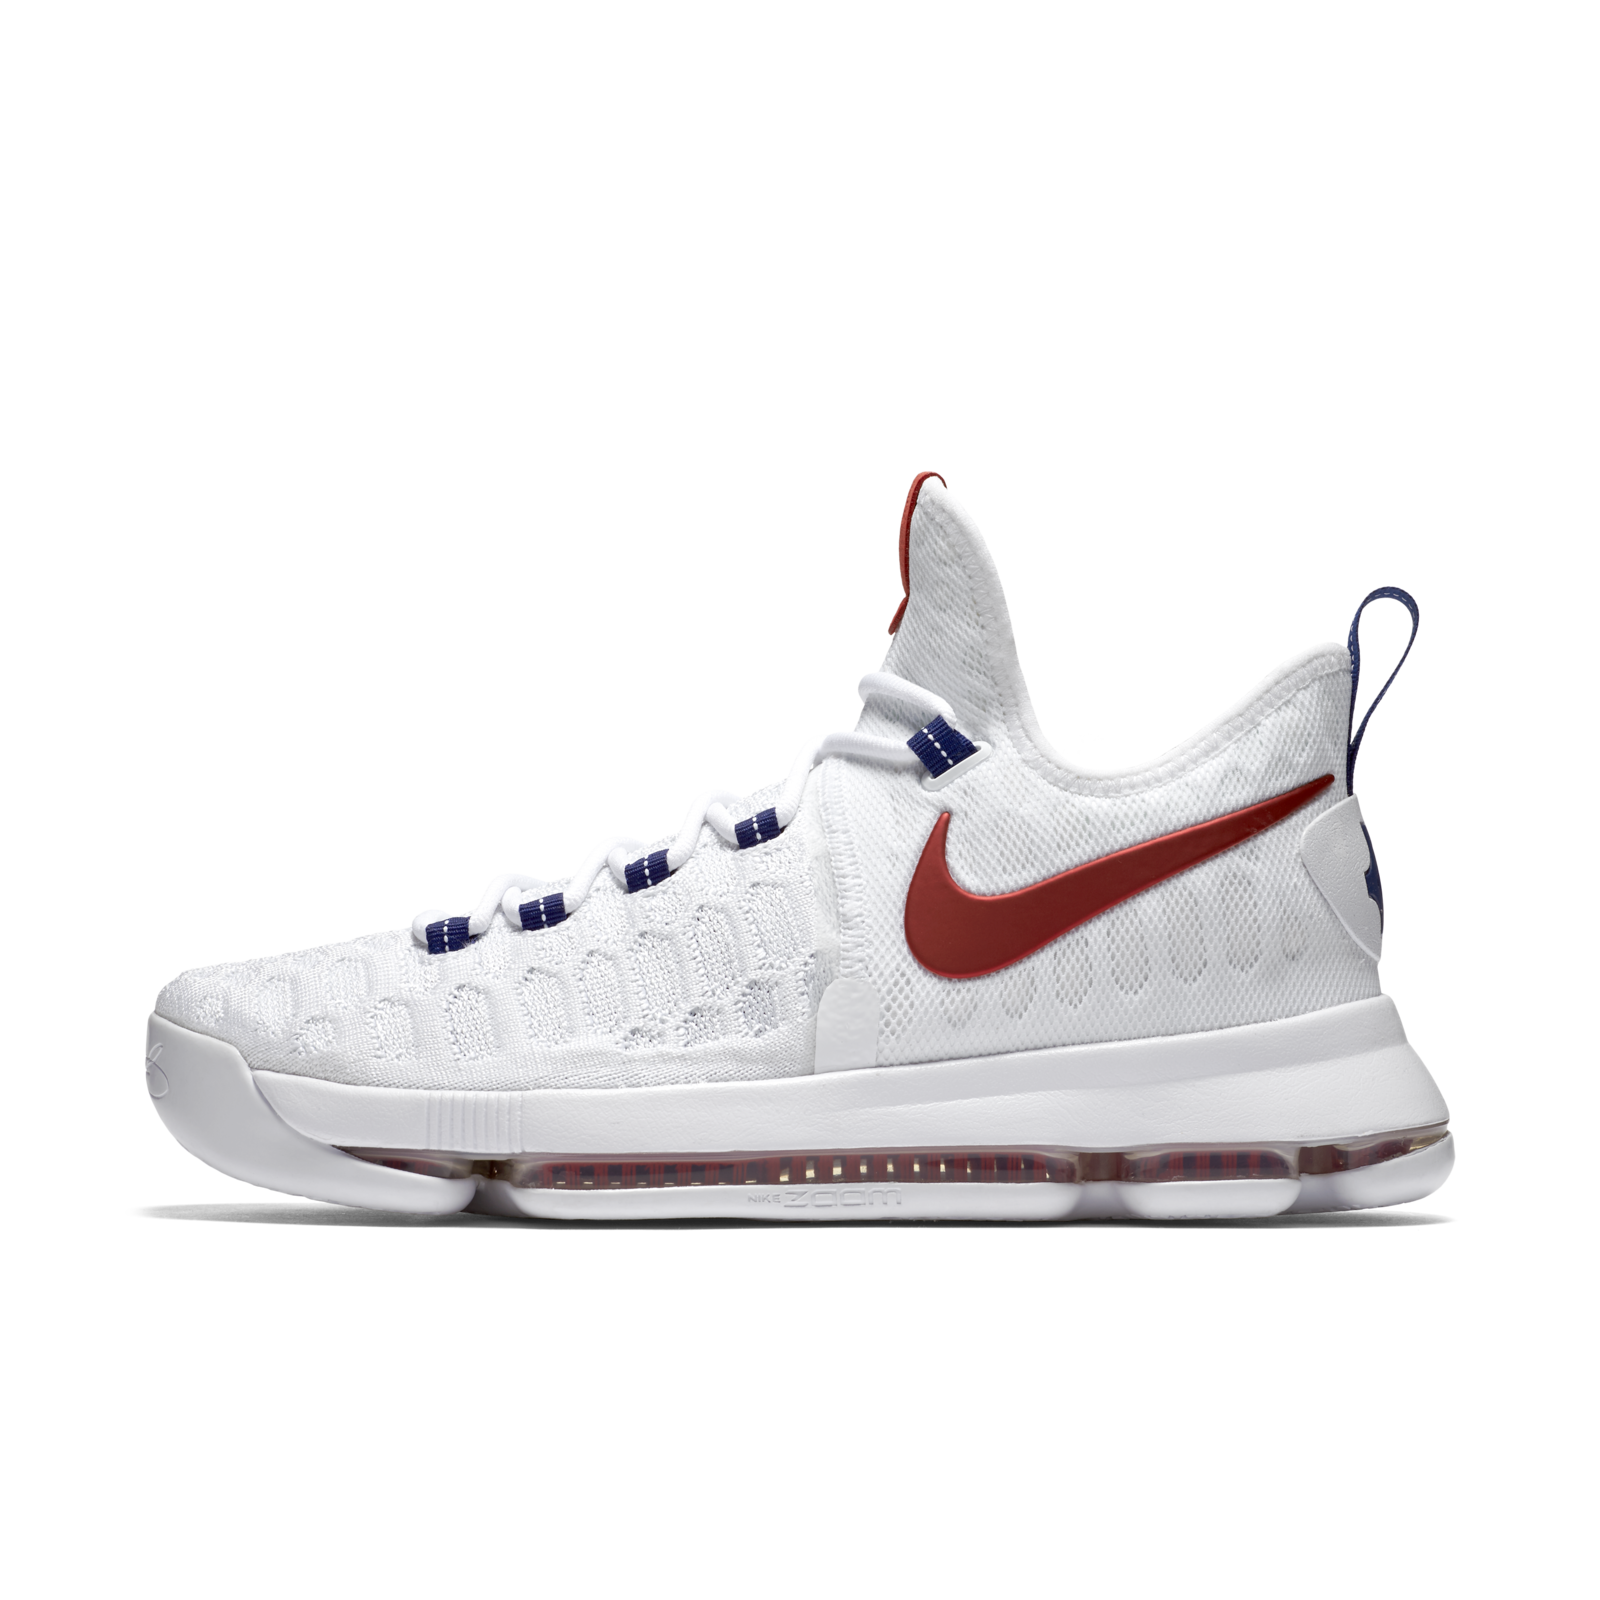 Durant Kd Nike Shoes